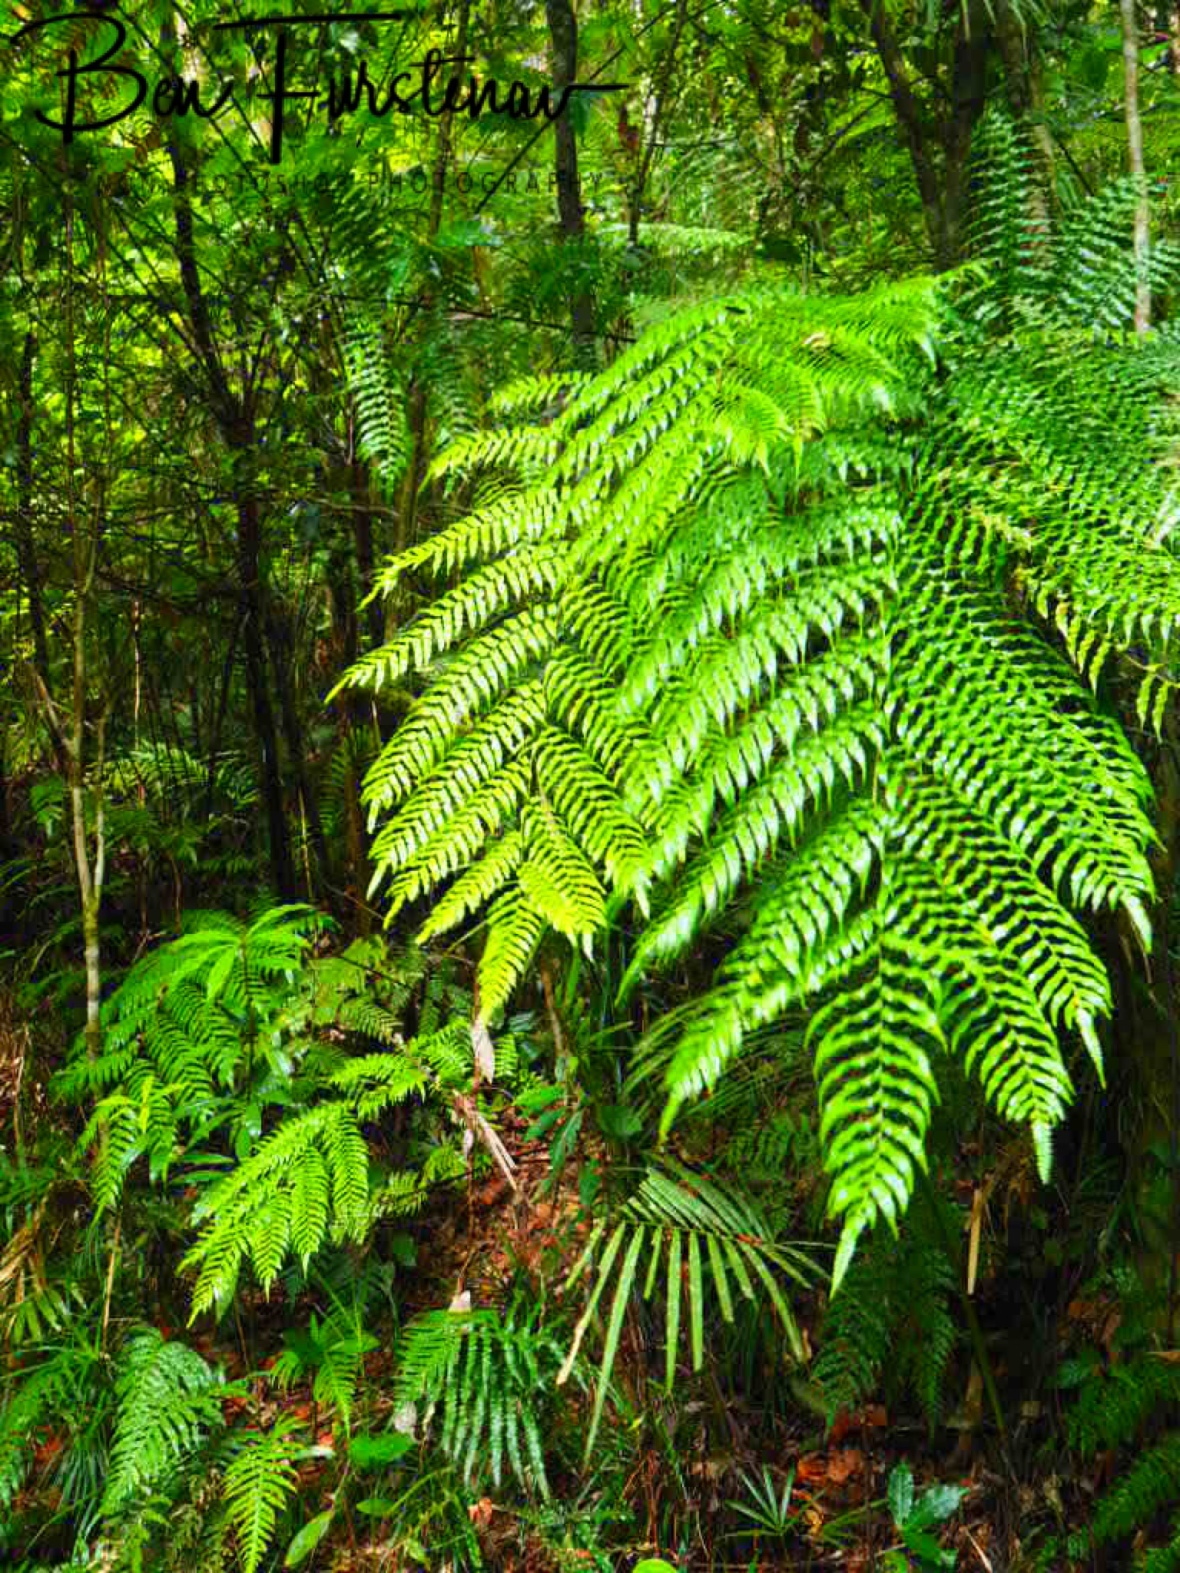 50 Shades of green at Atherton Tablelands, far North Queensland, Australia